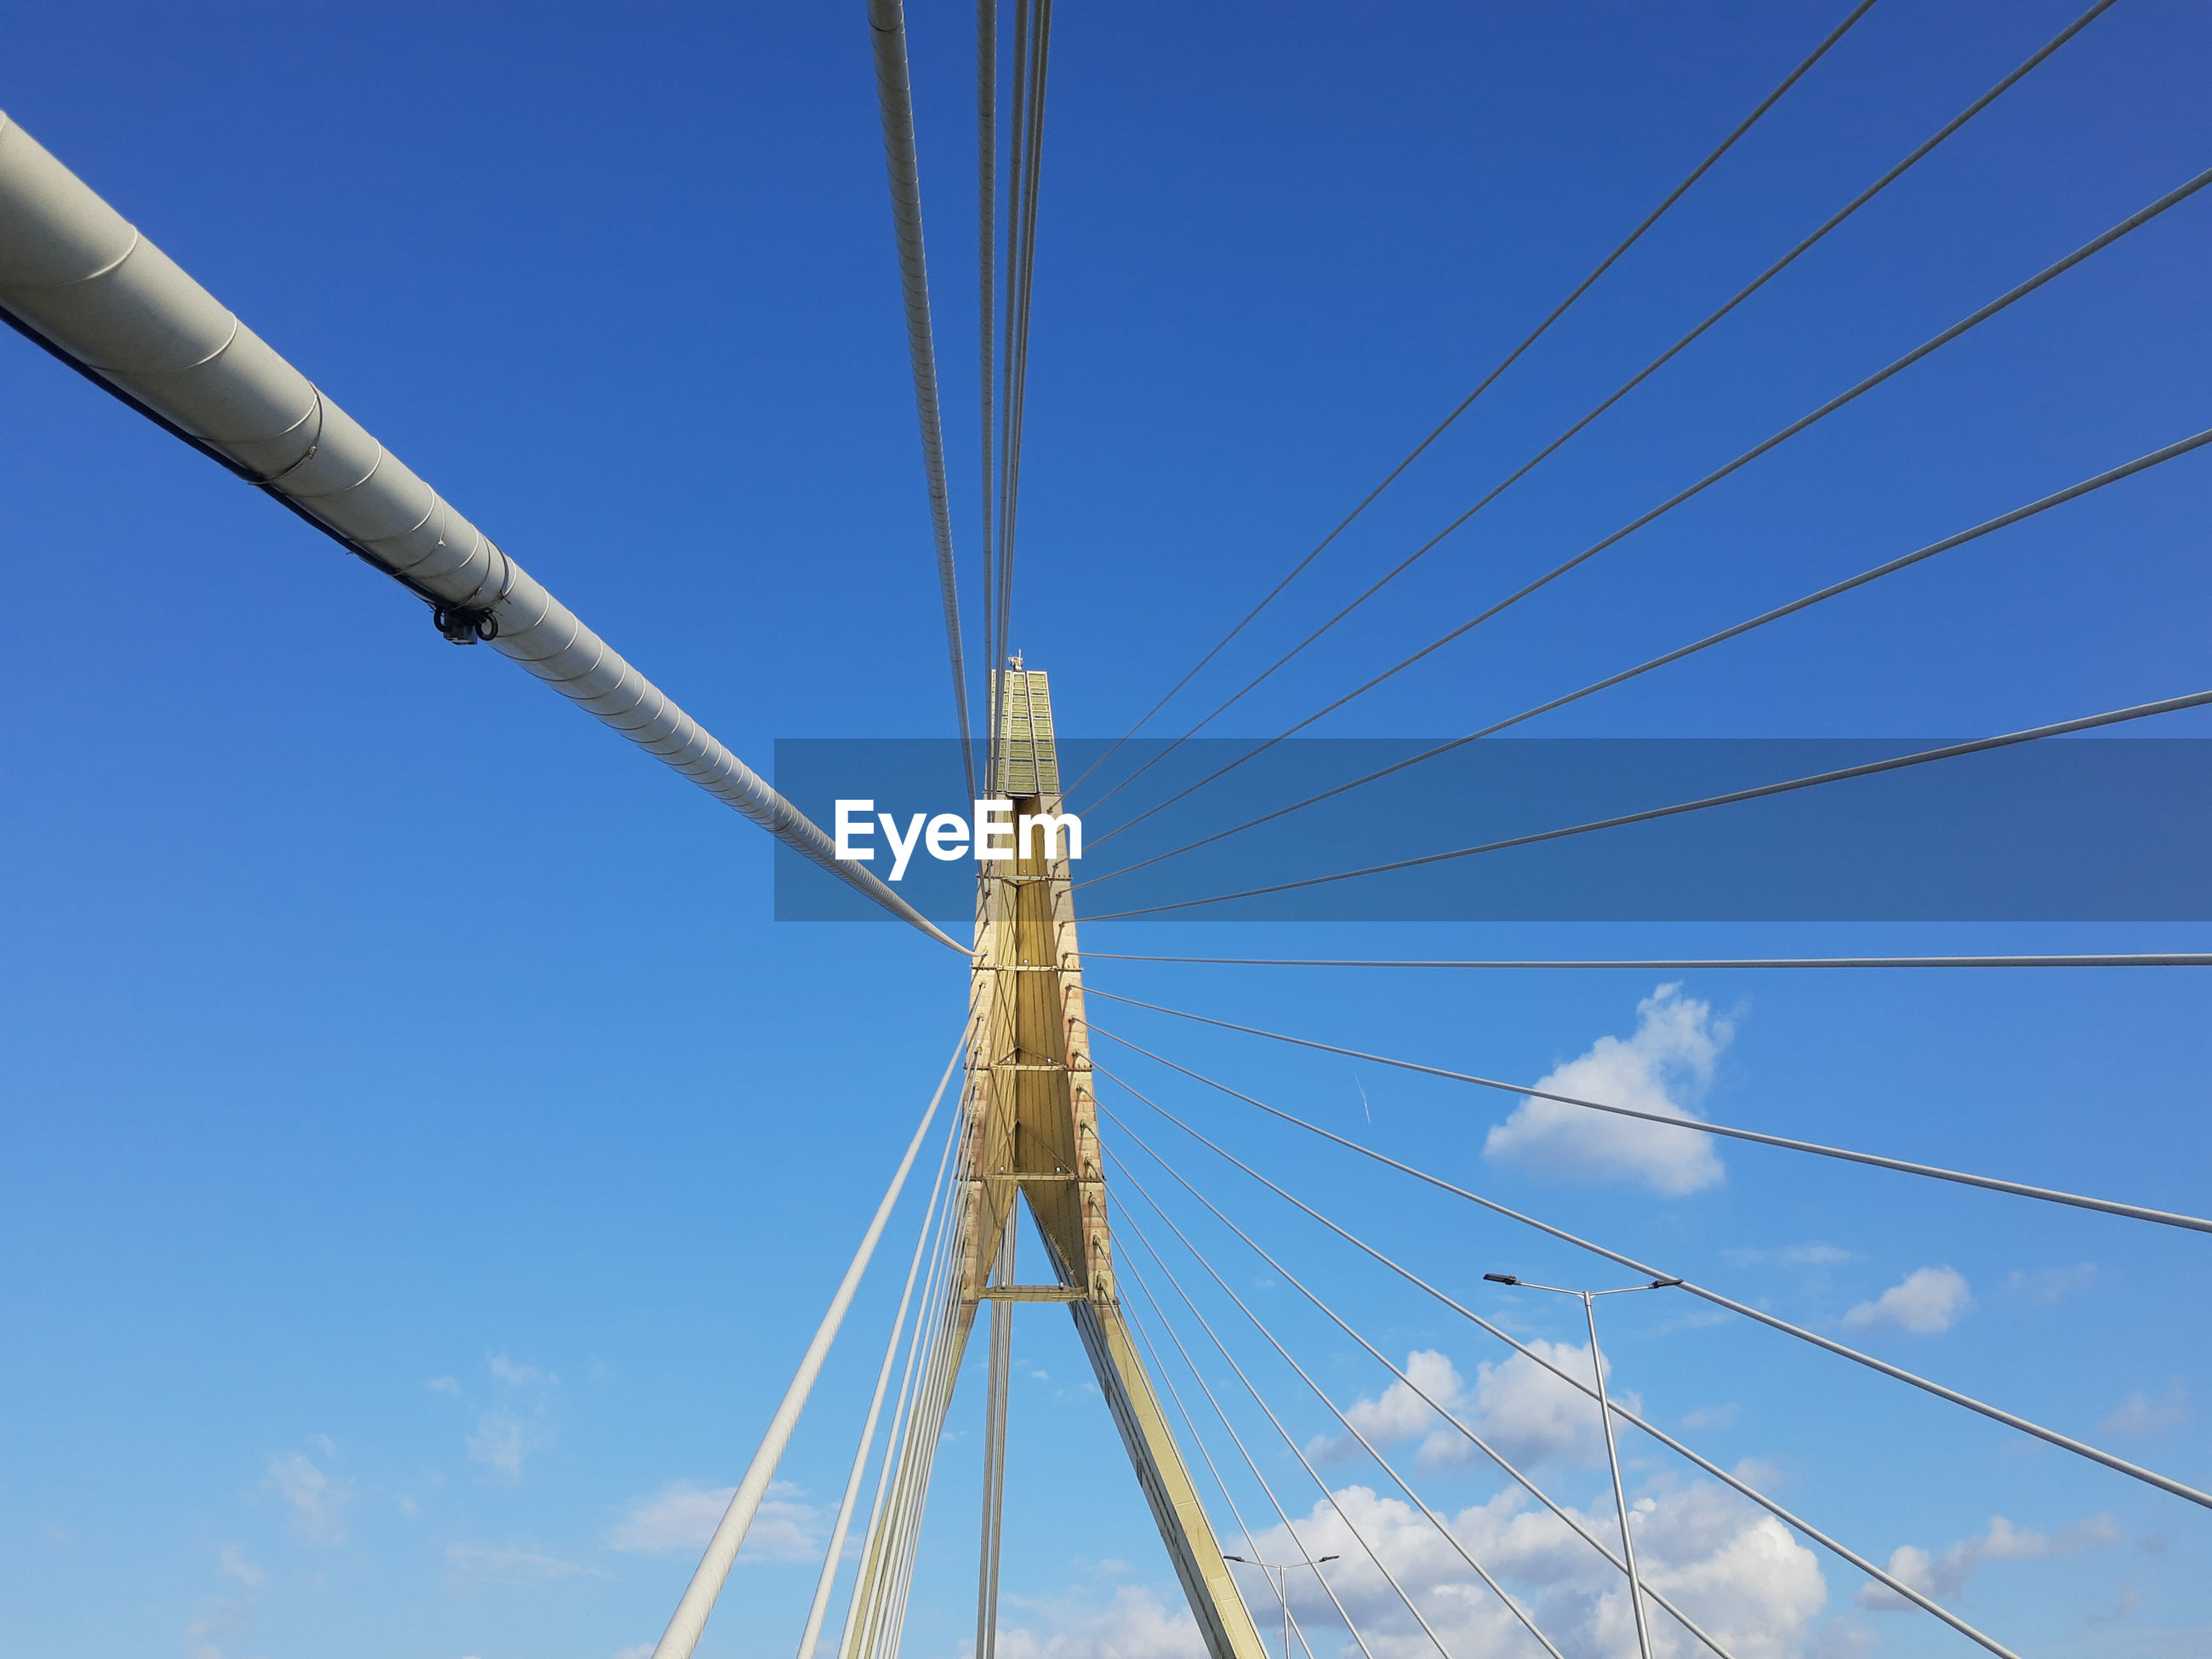 LOW ANGLE VIEW OF SUSPENSION BRIDGE CABLES AGAINST BLUE SKY